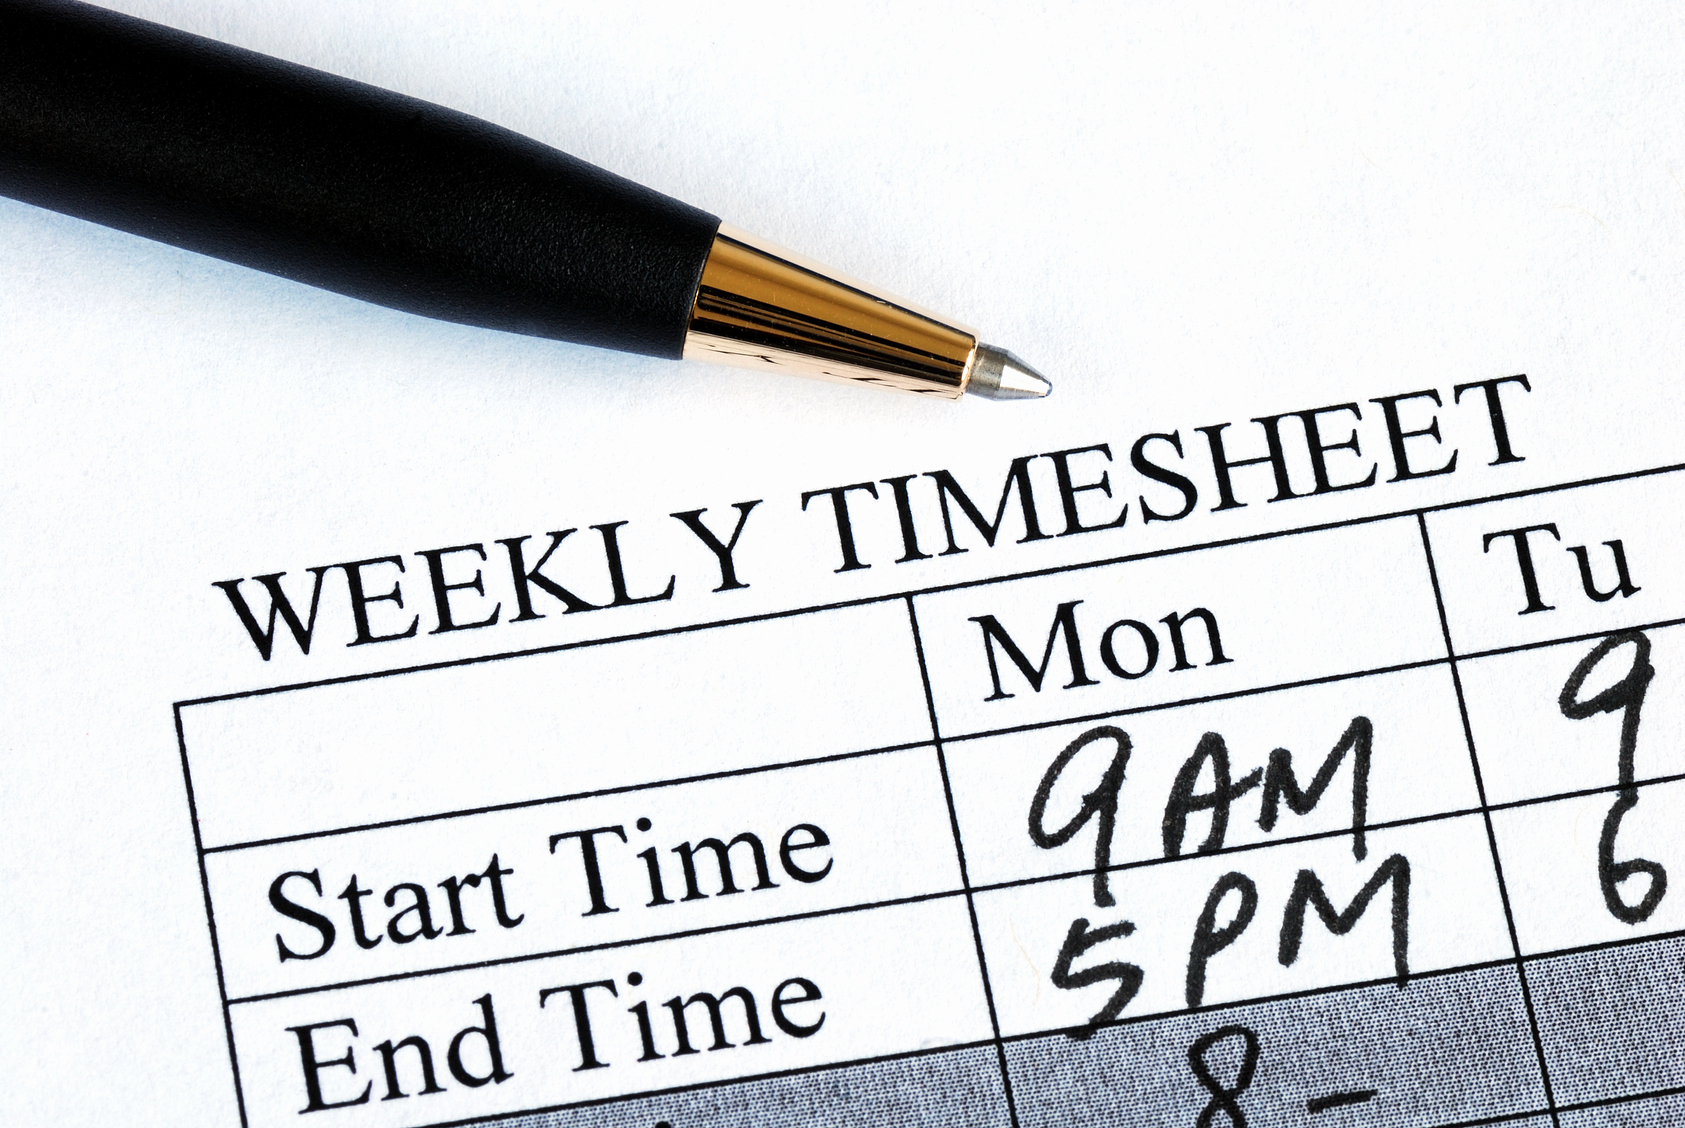 Best Timesheet App For Small Business Or Using Mobile